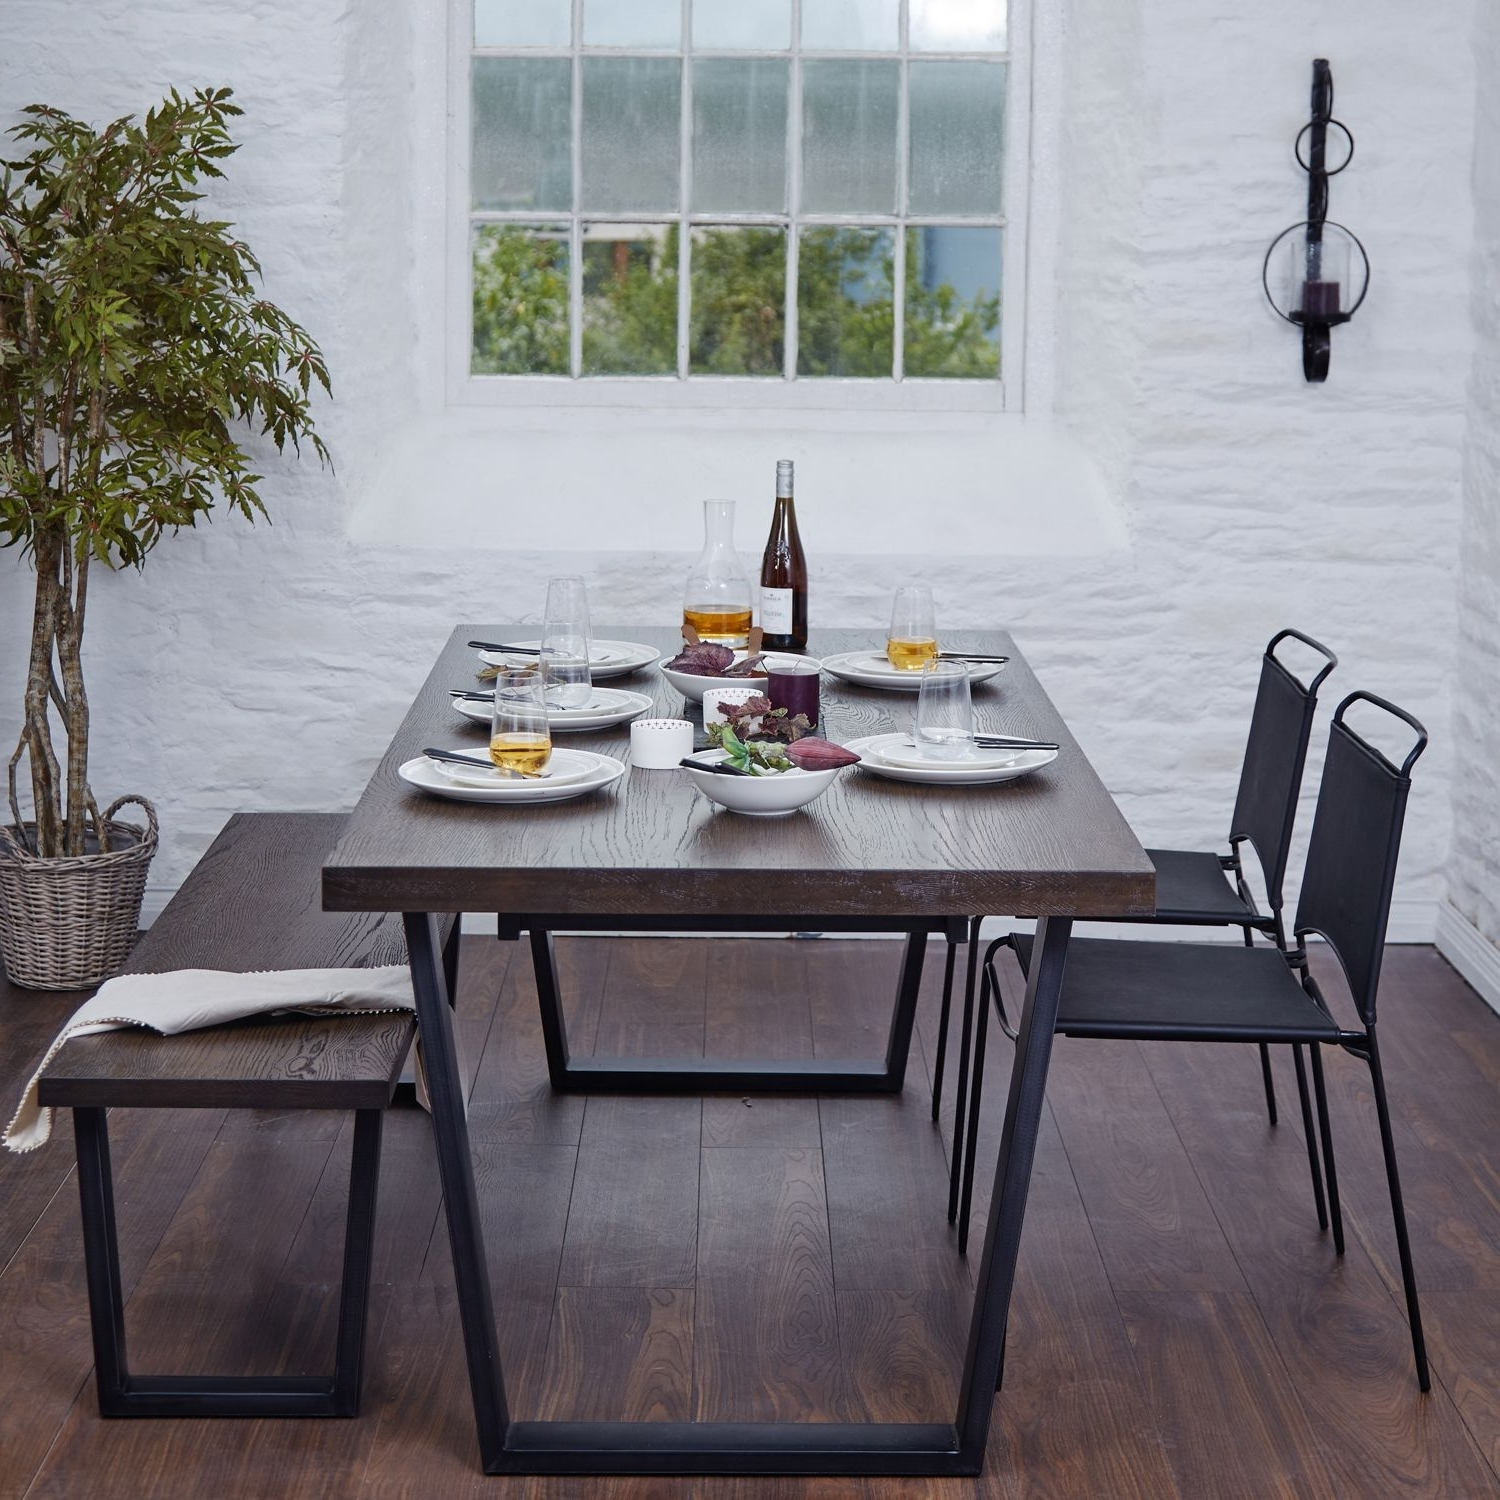 Calia Smoked Oak Dining Table Pertaining To Current Oak Dining Furniture (View 16 of 25)